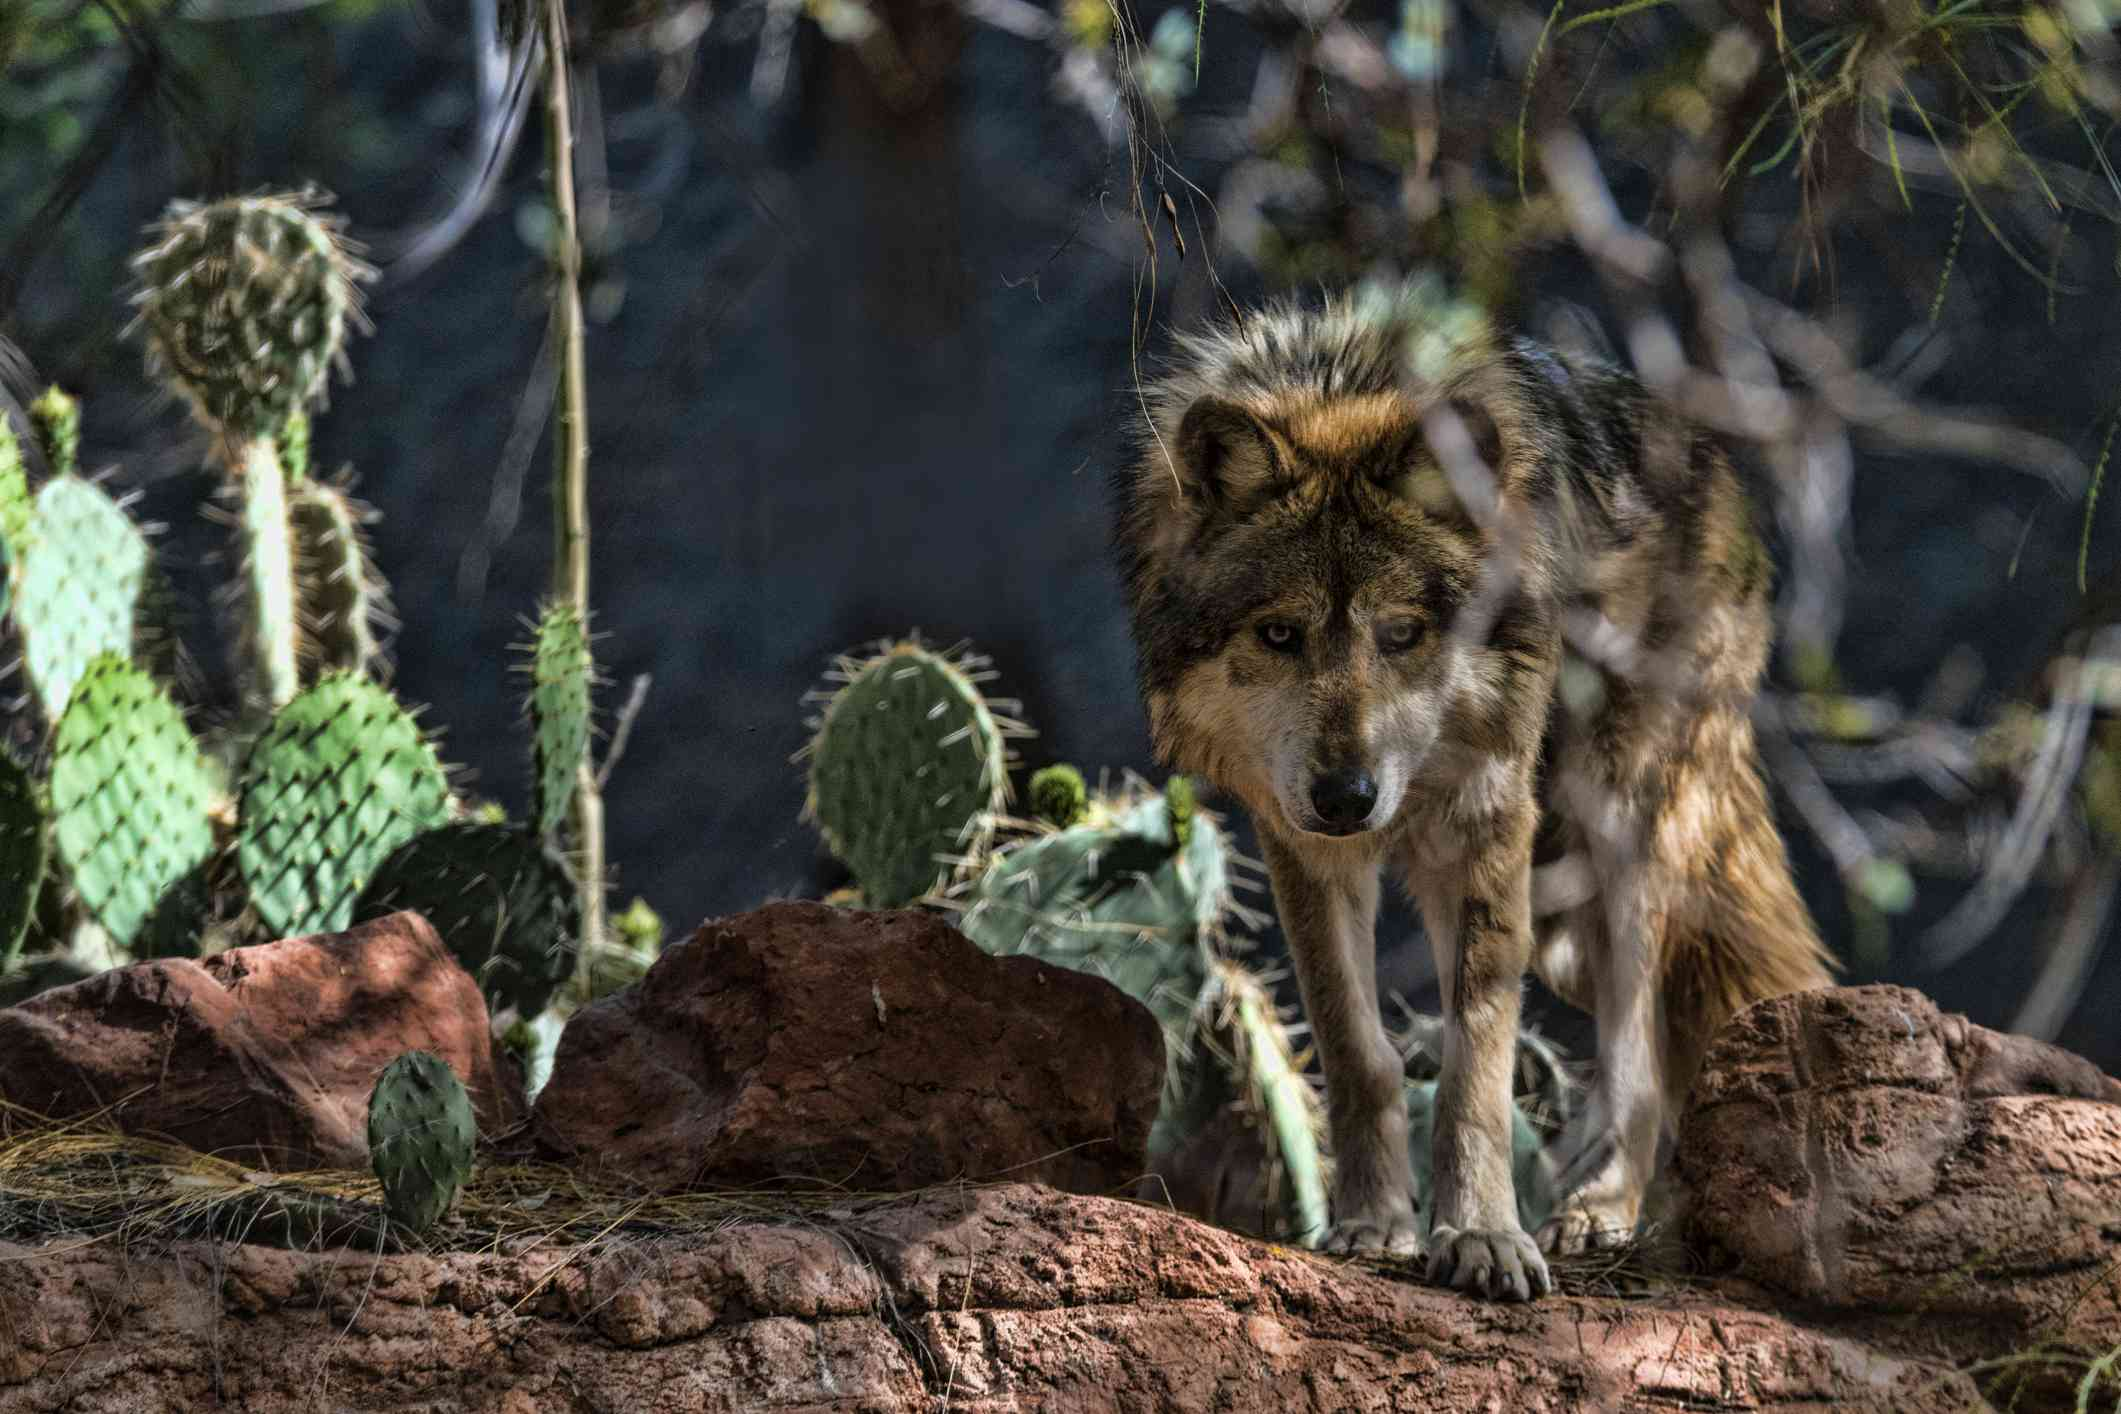 The Mexican wolf is a critically endangered subspecies of gray wolf.